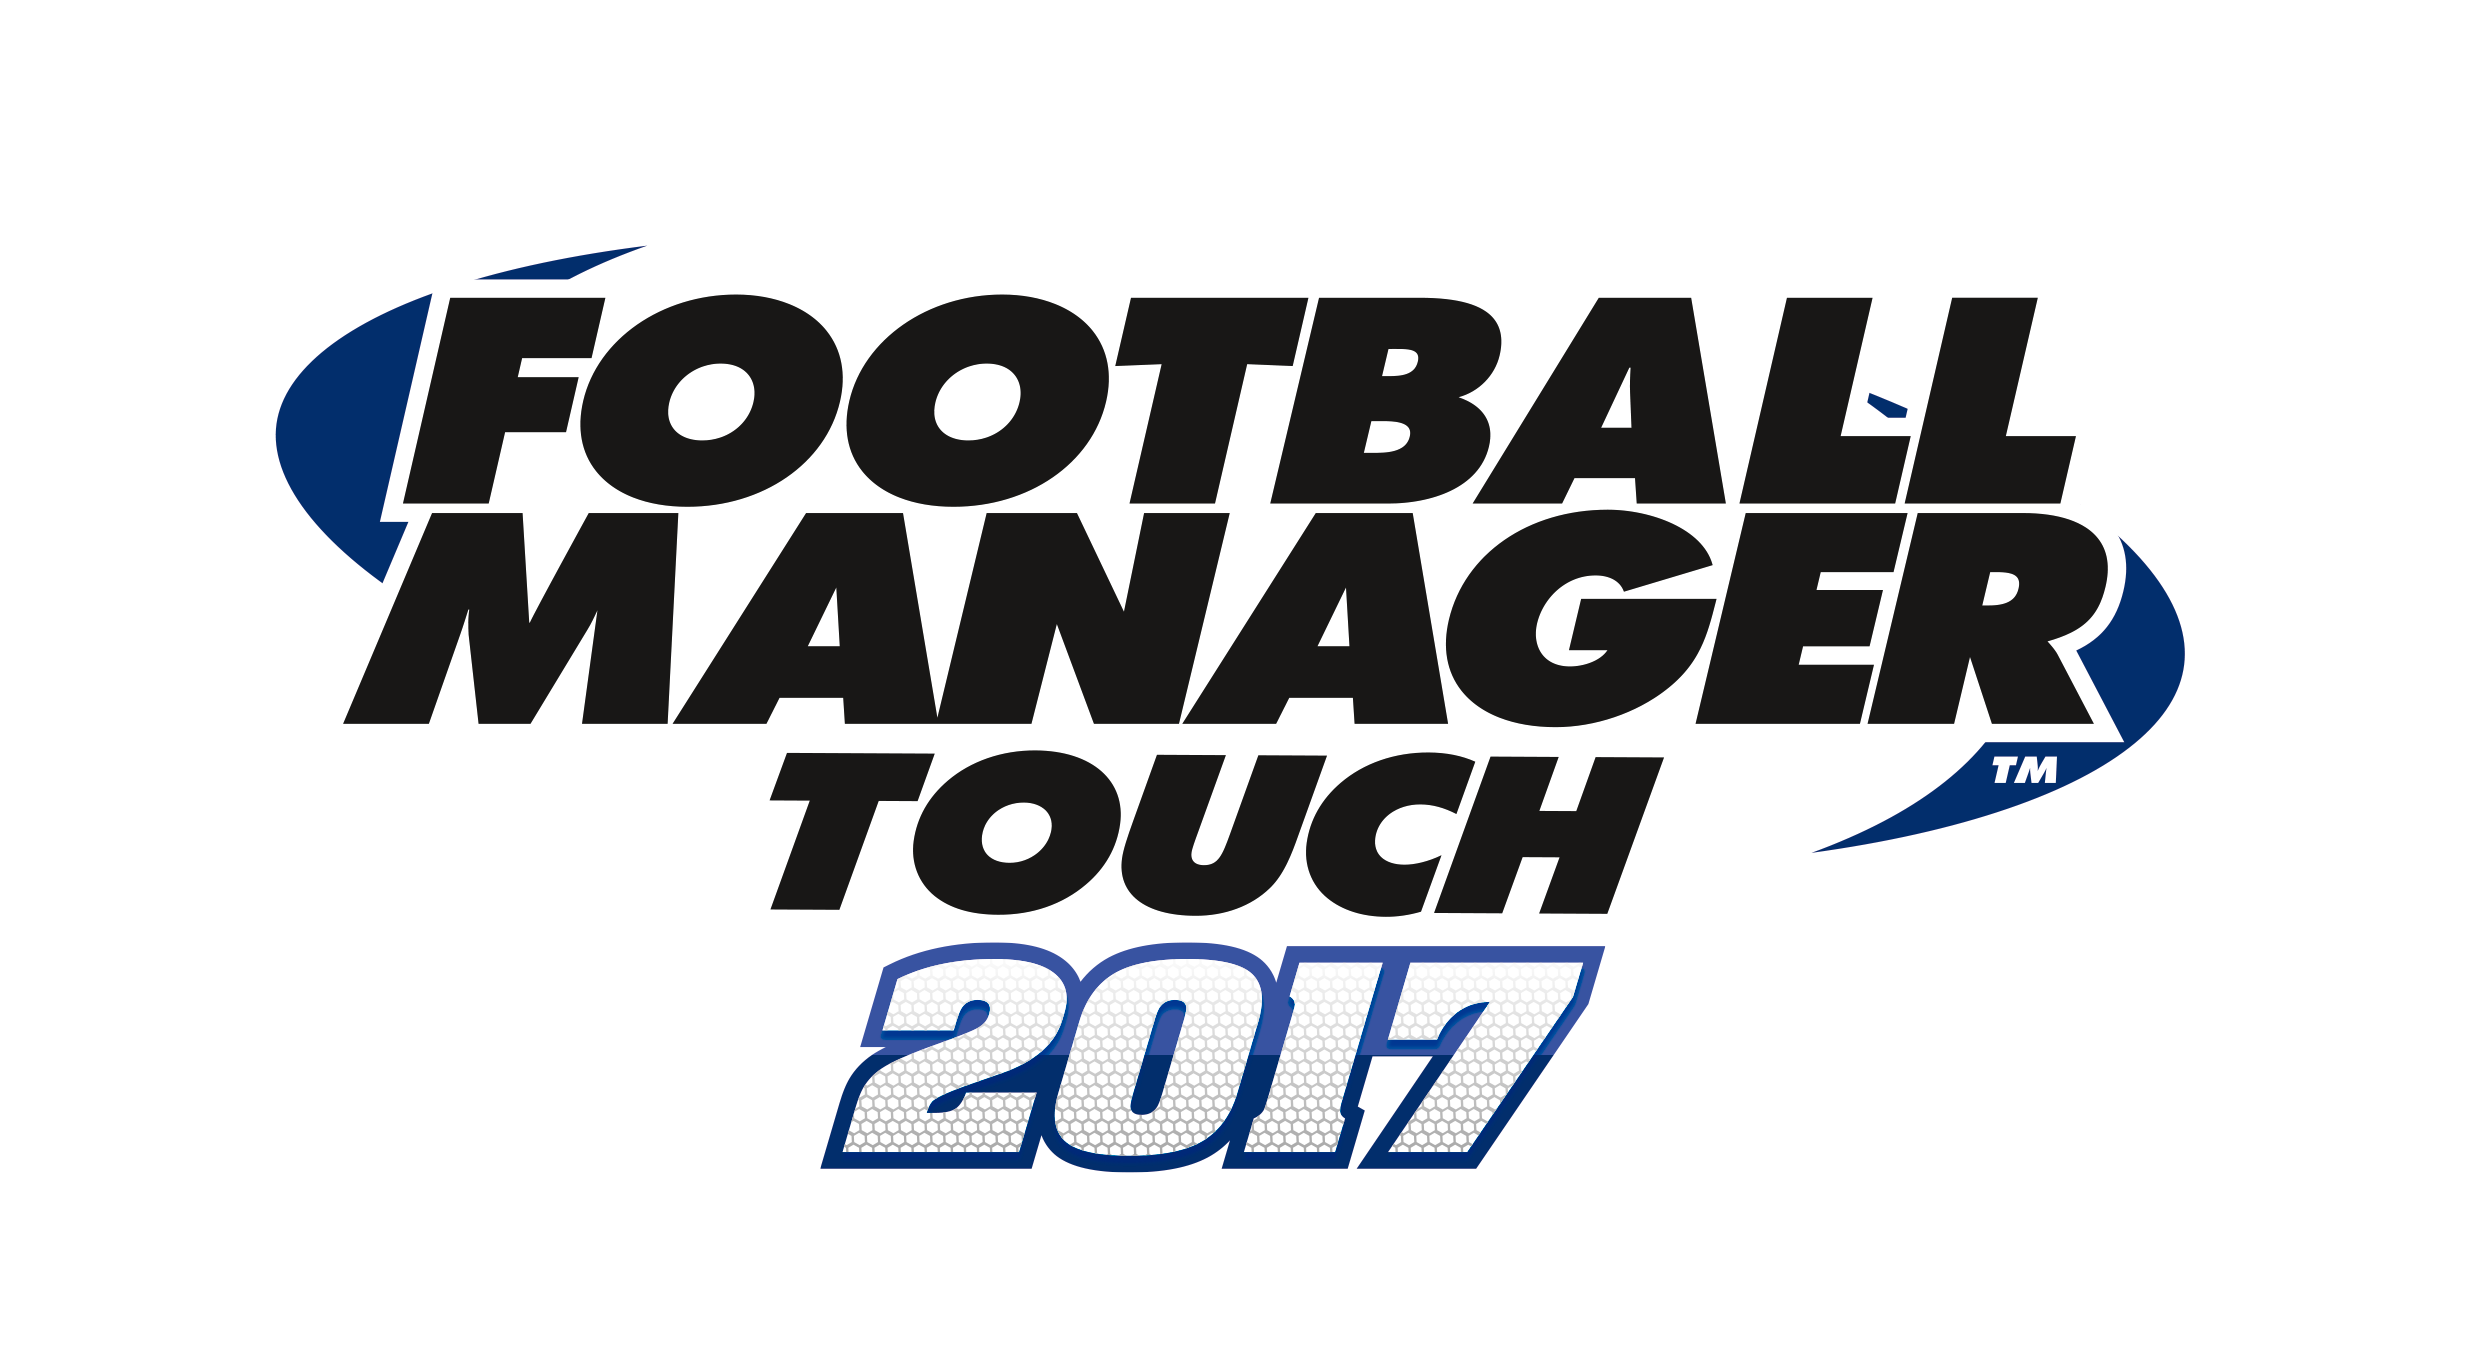 Football Manager Touch 2017 (Steam ключ RU)